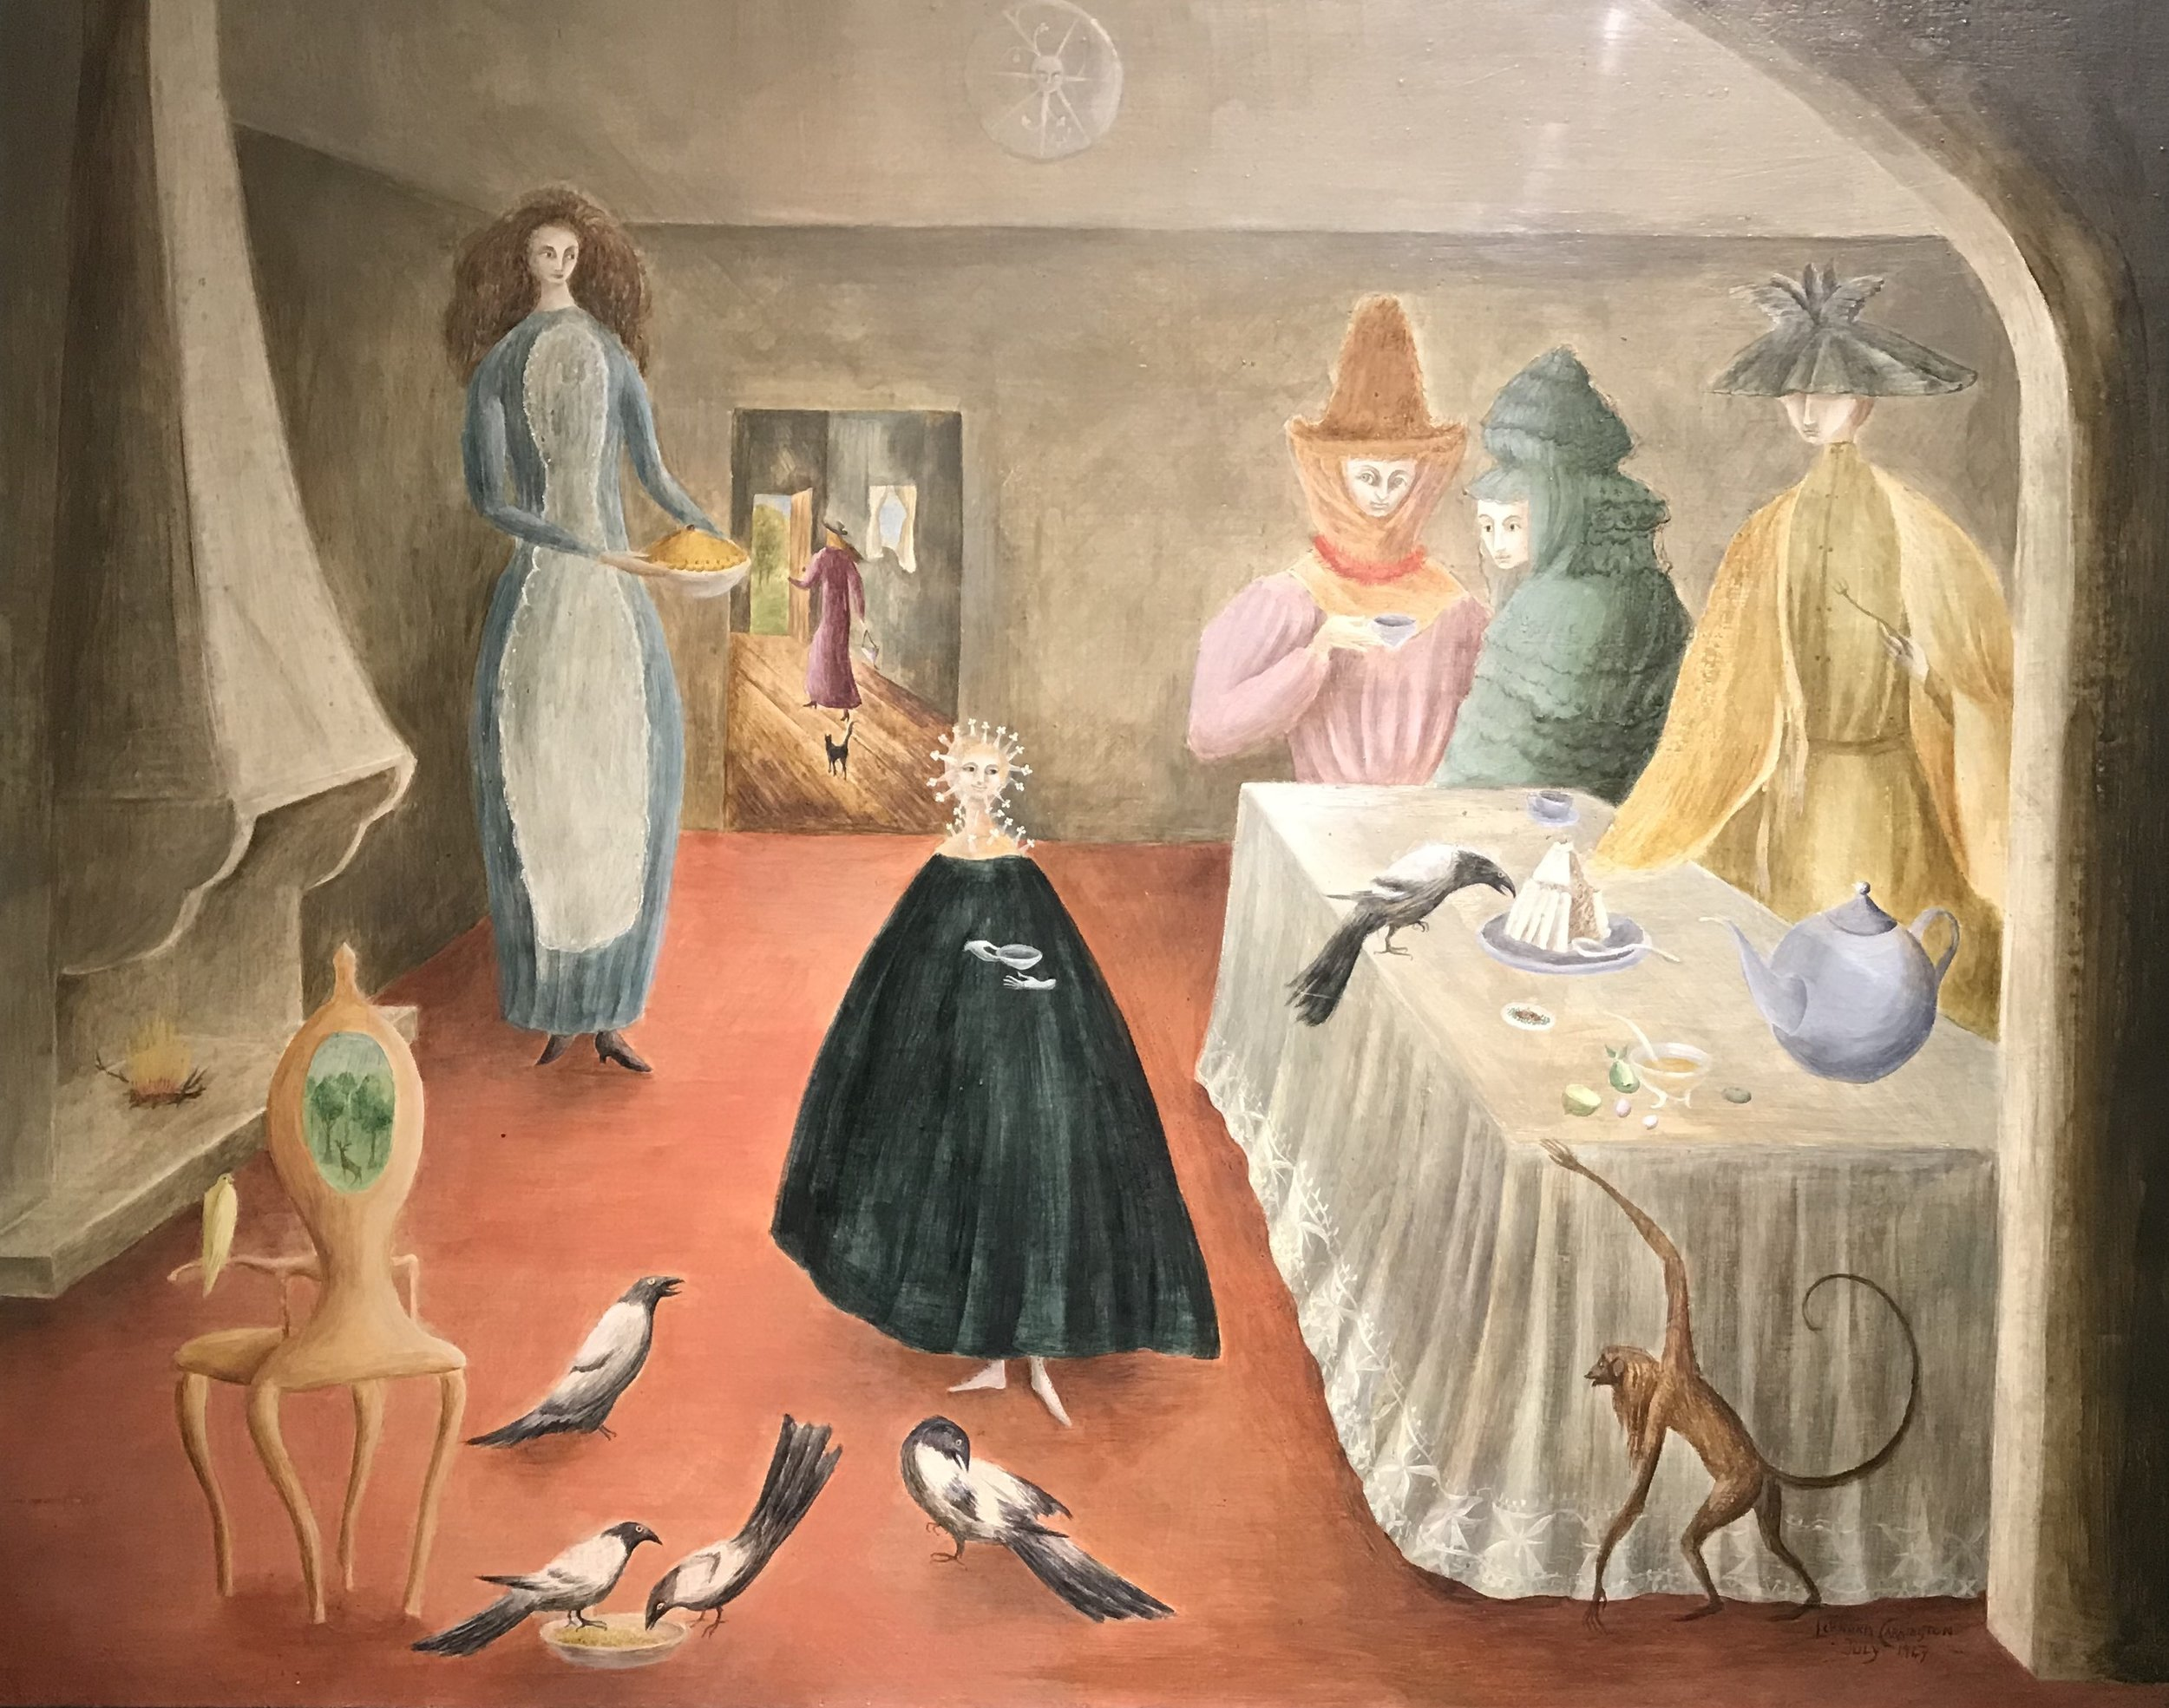 Solteronas (The Old Maids)  by Leonora Carrington, 1947. From the collection of Robert and Lisa Sainsbury,  Sainsbury Center for Visual Arts , East Anglia, Norwich, England.